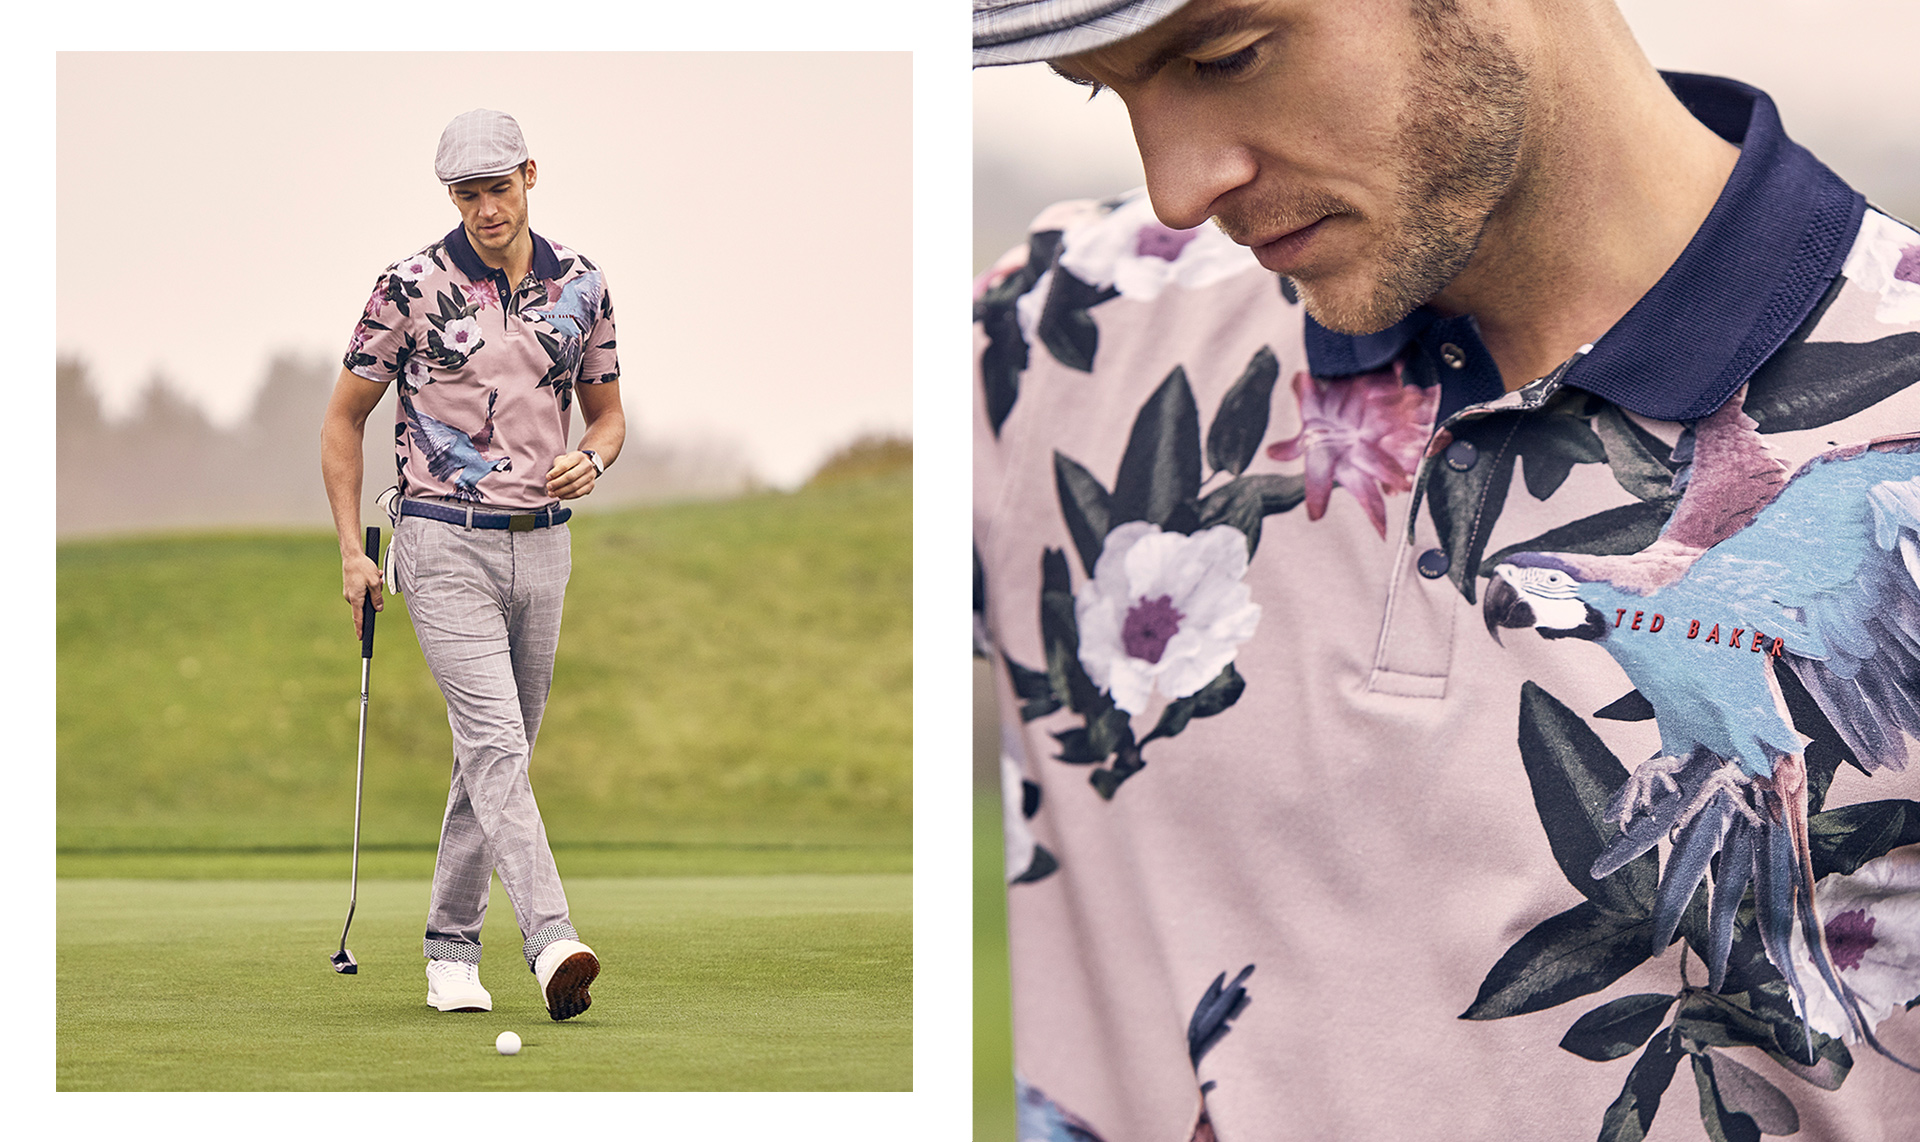 1_Ted_baker_golf_retouching_photography_sport_fashion